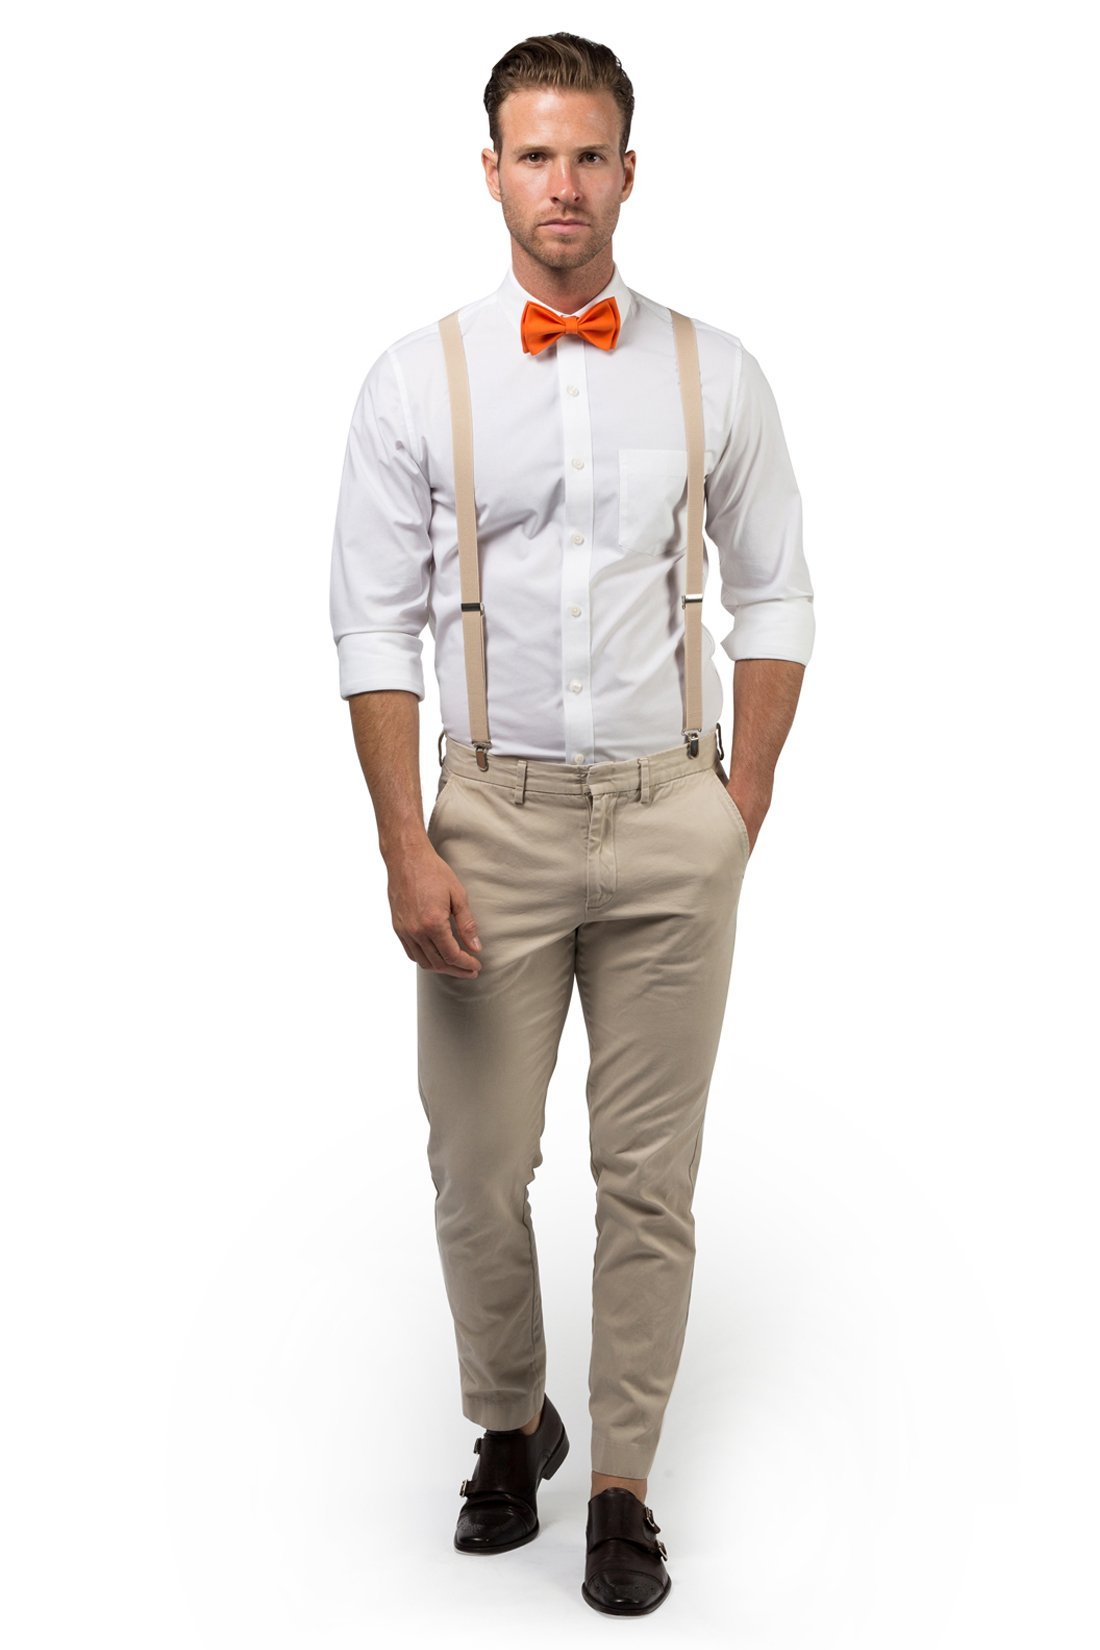 Beige Suspenders & Orange Bow Tie